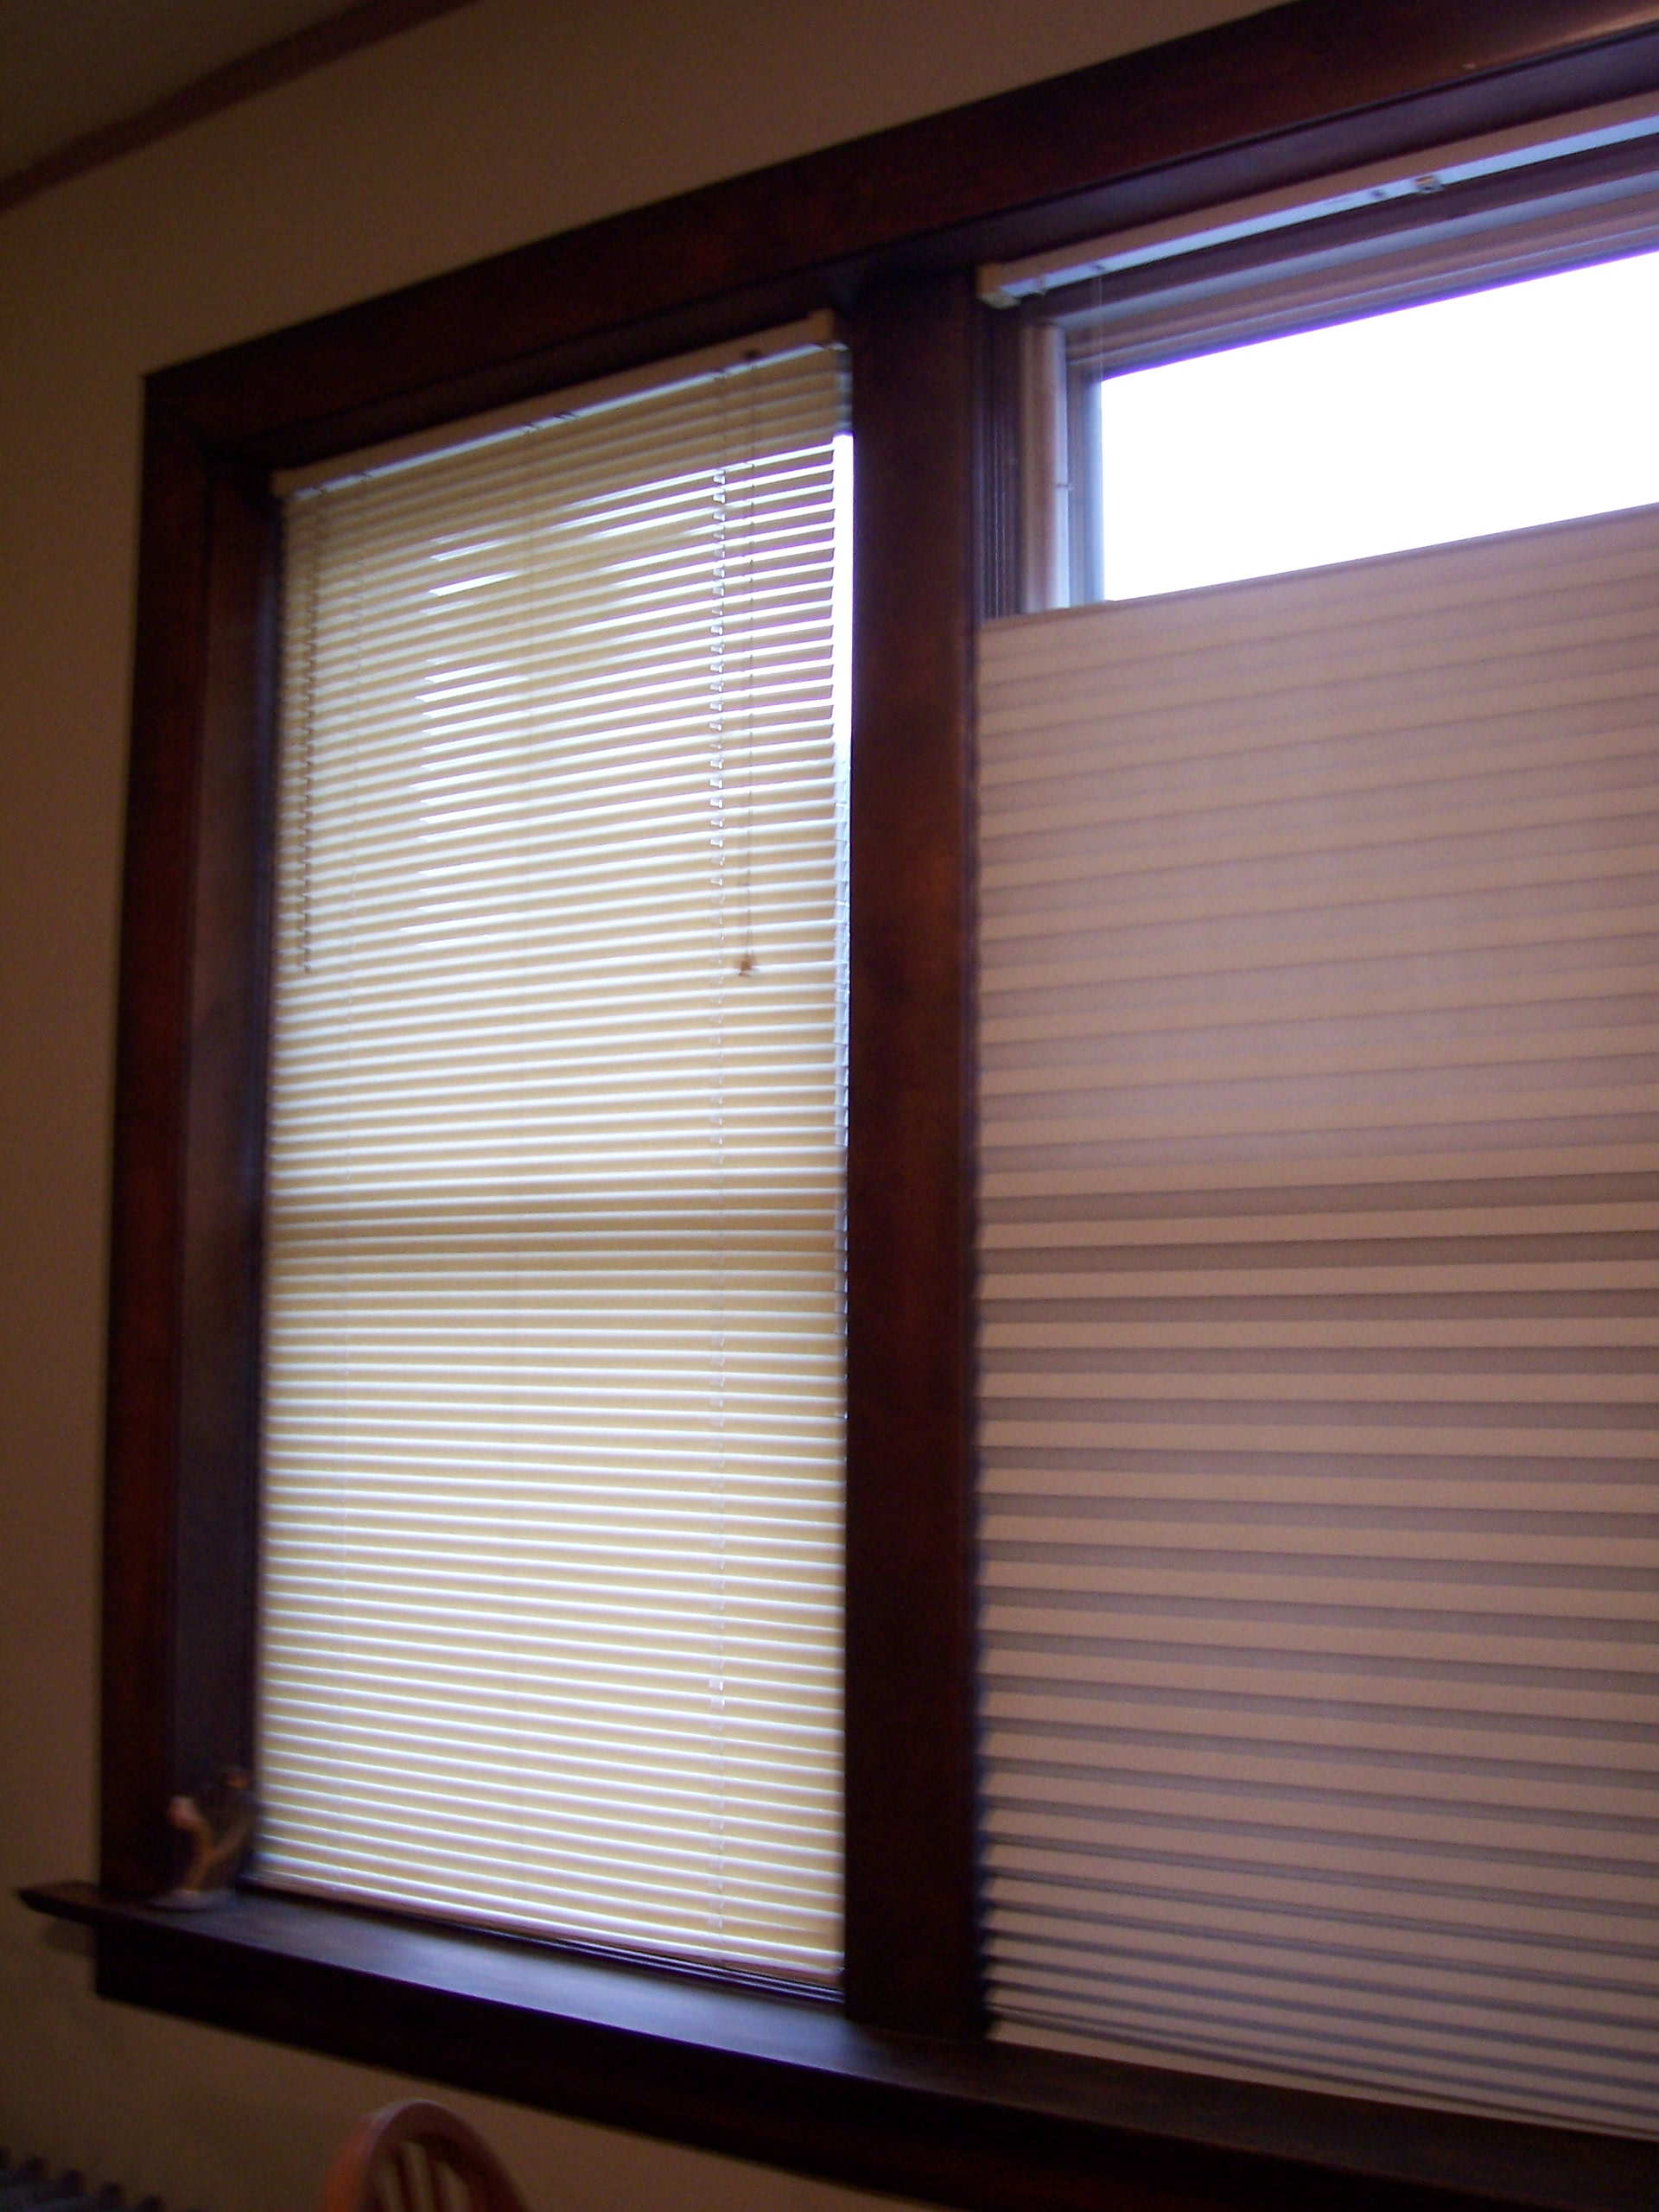 Create your own top down blinds 17 steps with pictures picture of create your own top down blinds solutioingenieria Gallery